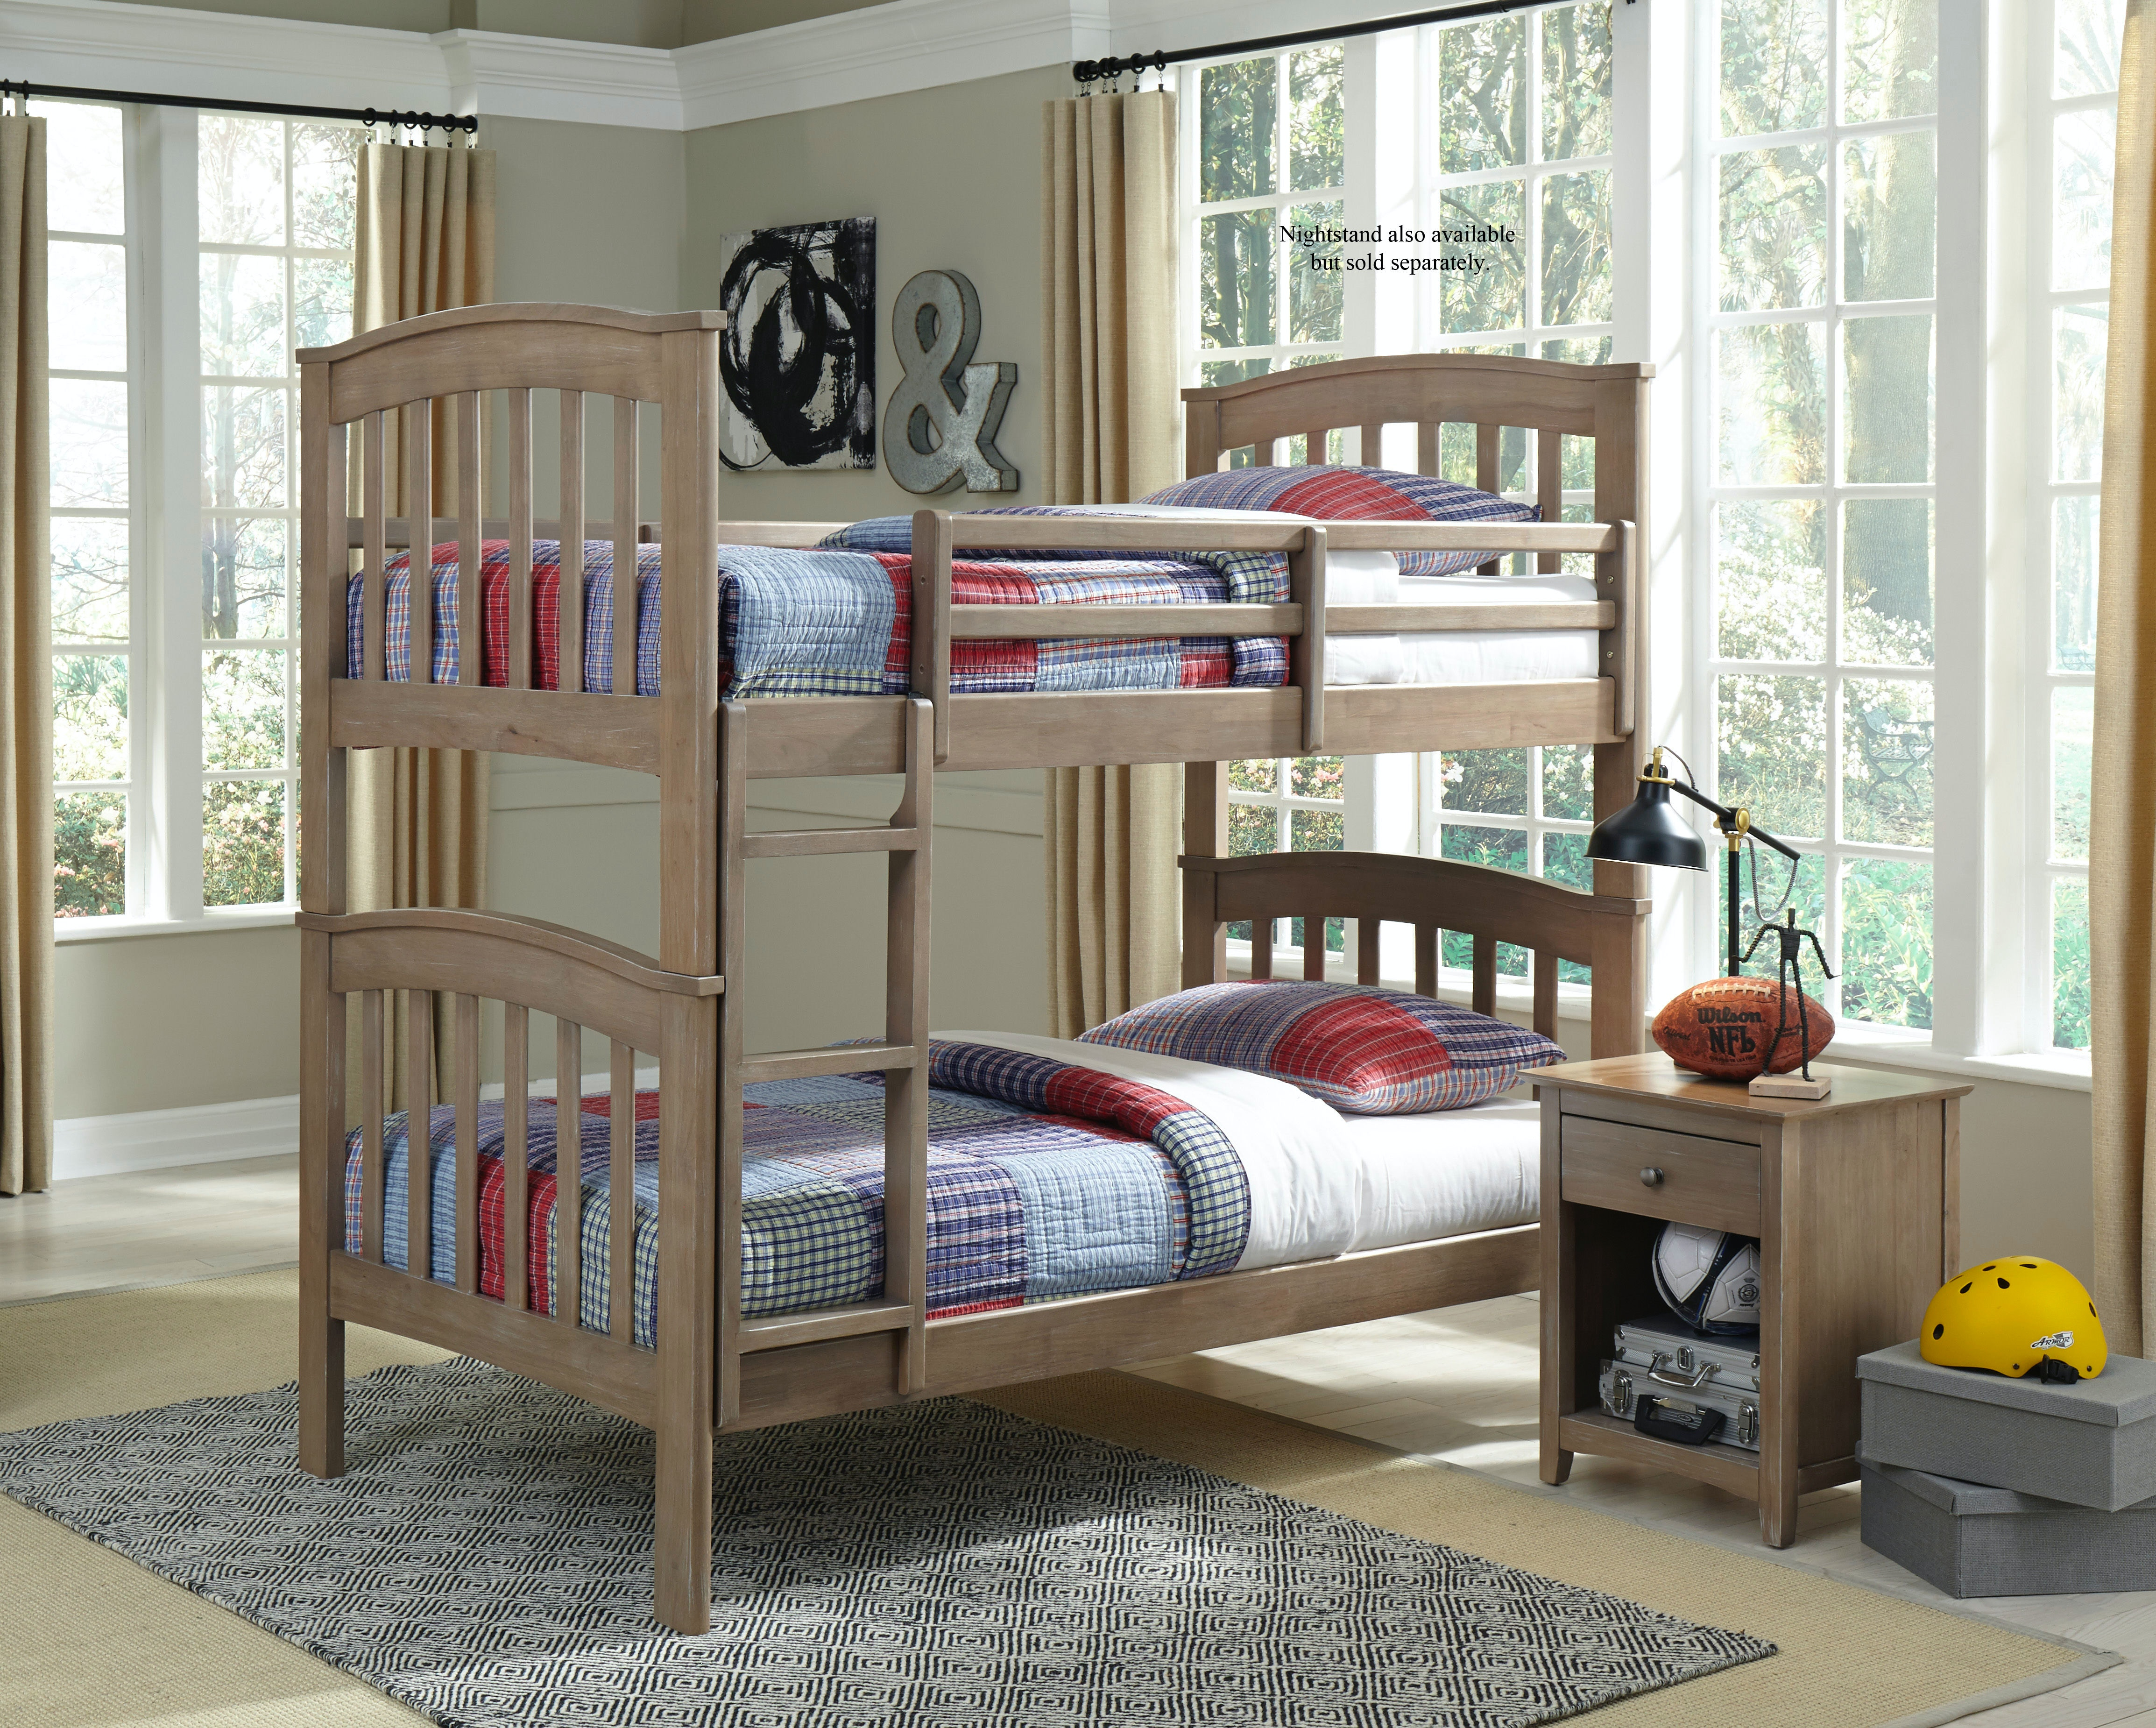 John Thomas Bedroom Bunk Bed In Taupe Gray W/ Unfinished Slats BD09 80BUNKE  / BE09 80BUNKR /